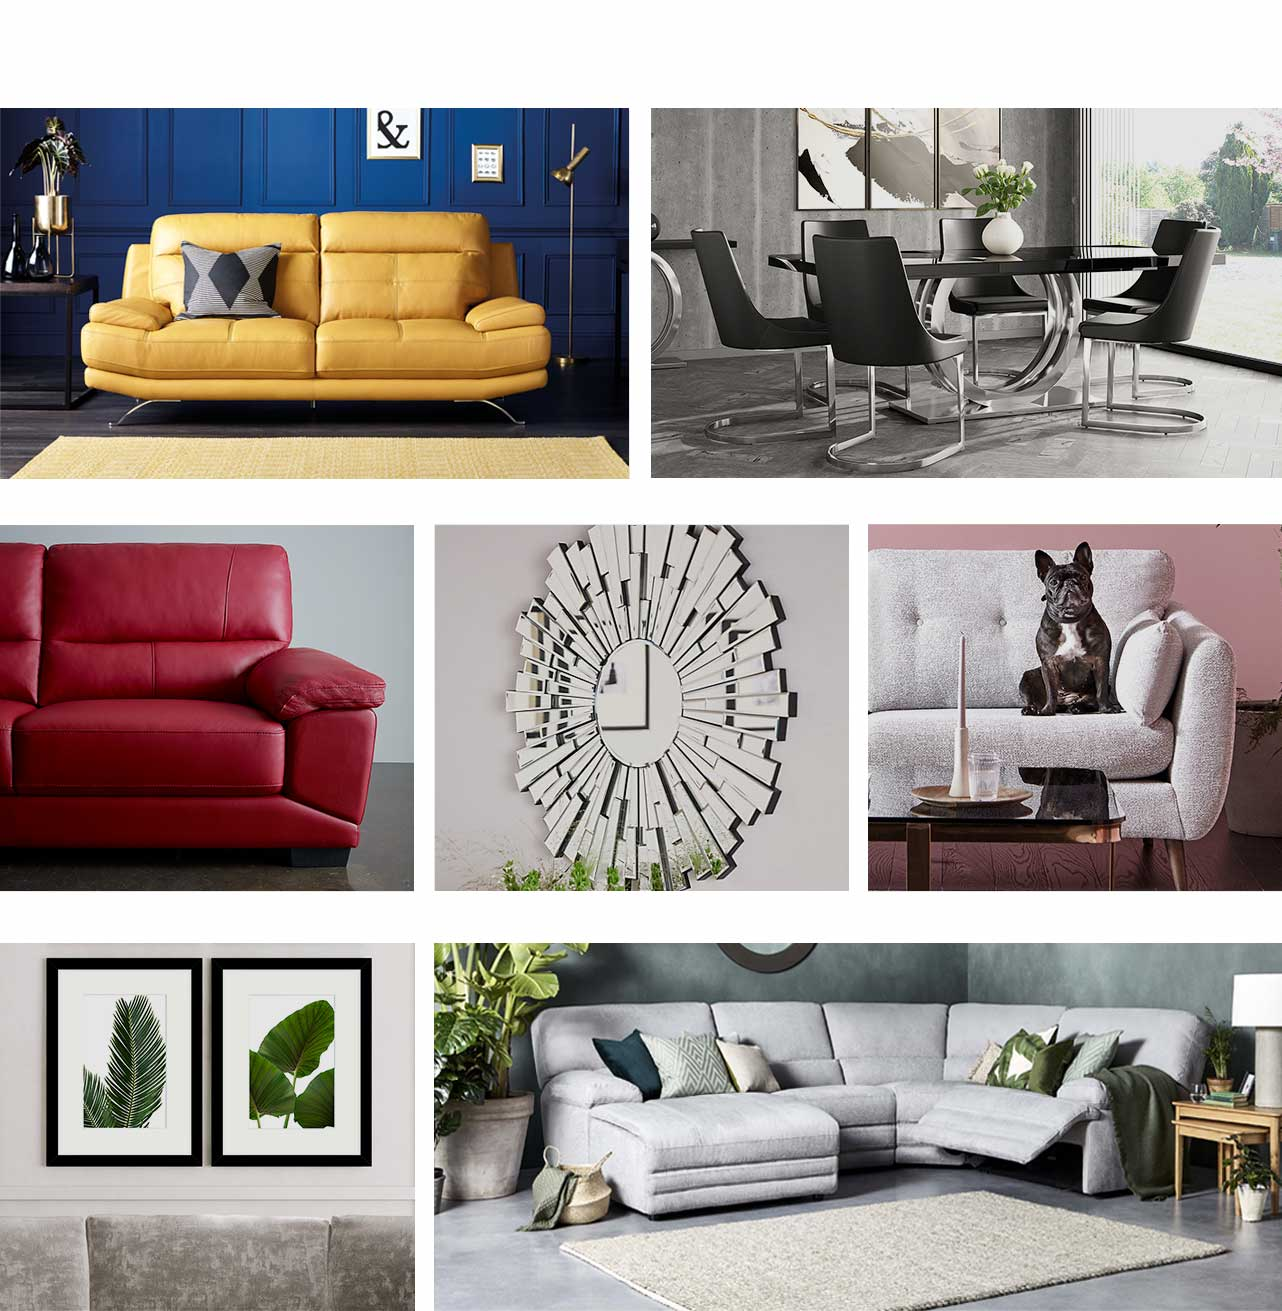 Harveys Furniture Shop Sofas Dining Home Accessories More